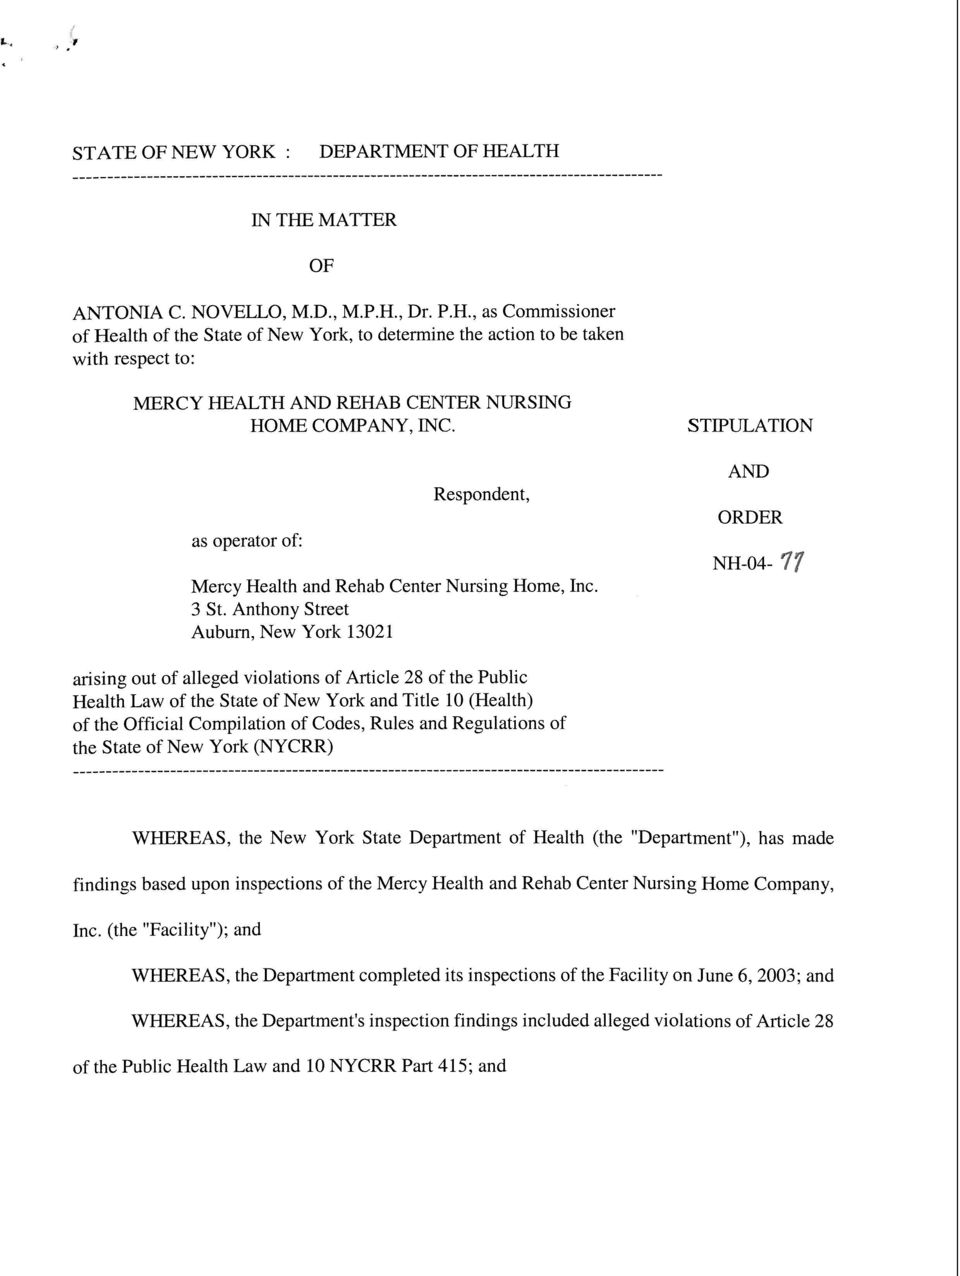 Anthony Street Auburn, New York 13021 STIPULATION AND ORDER NH-04-77 arising out of alleged violations of Article 28 of the Public Health Law of the State of New York and Title 10 (Health) of the